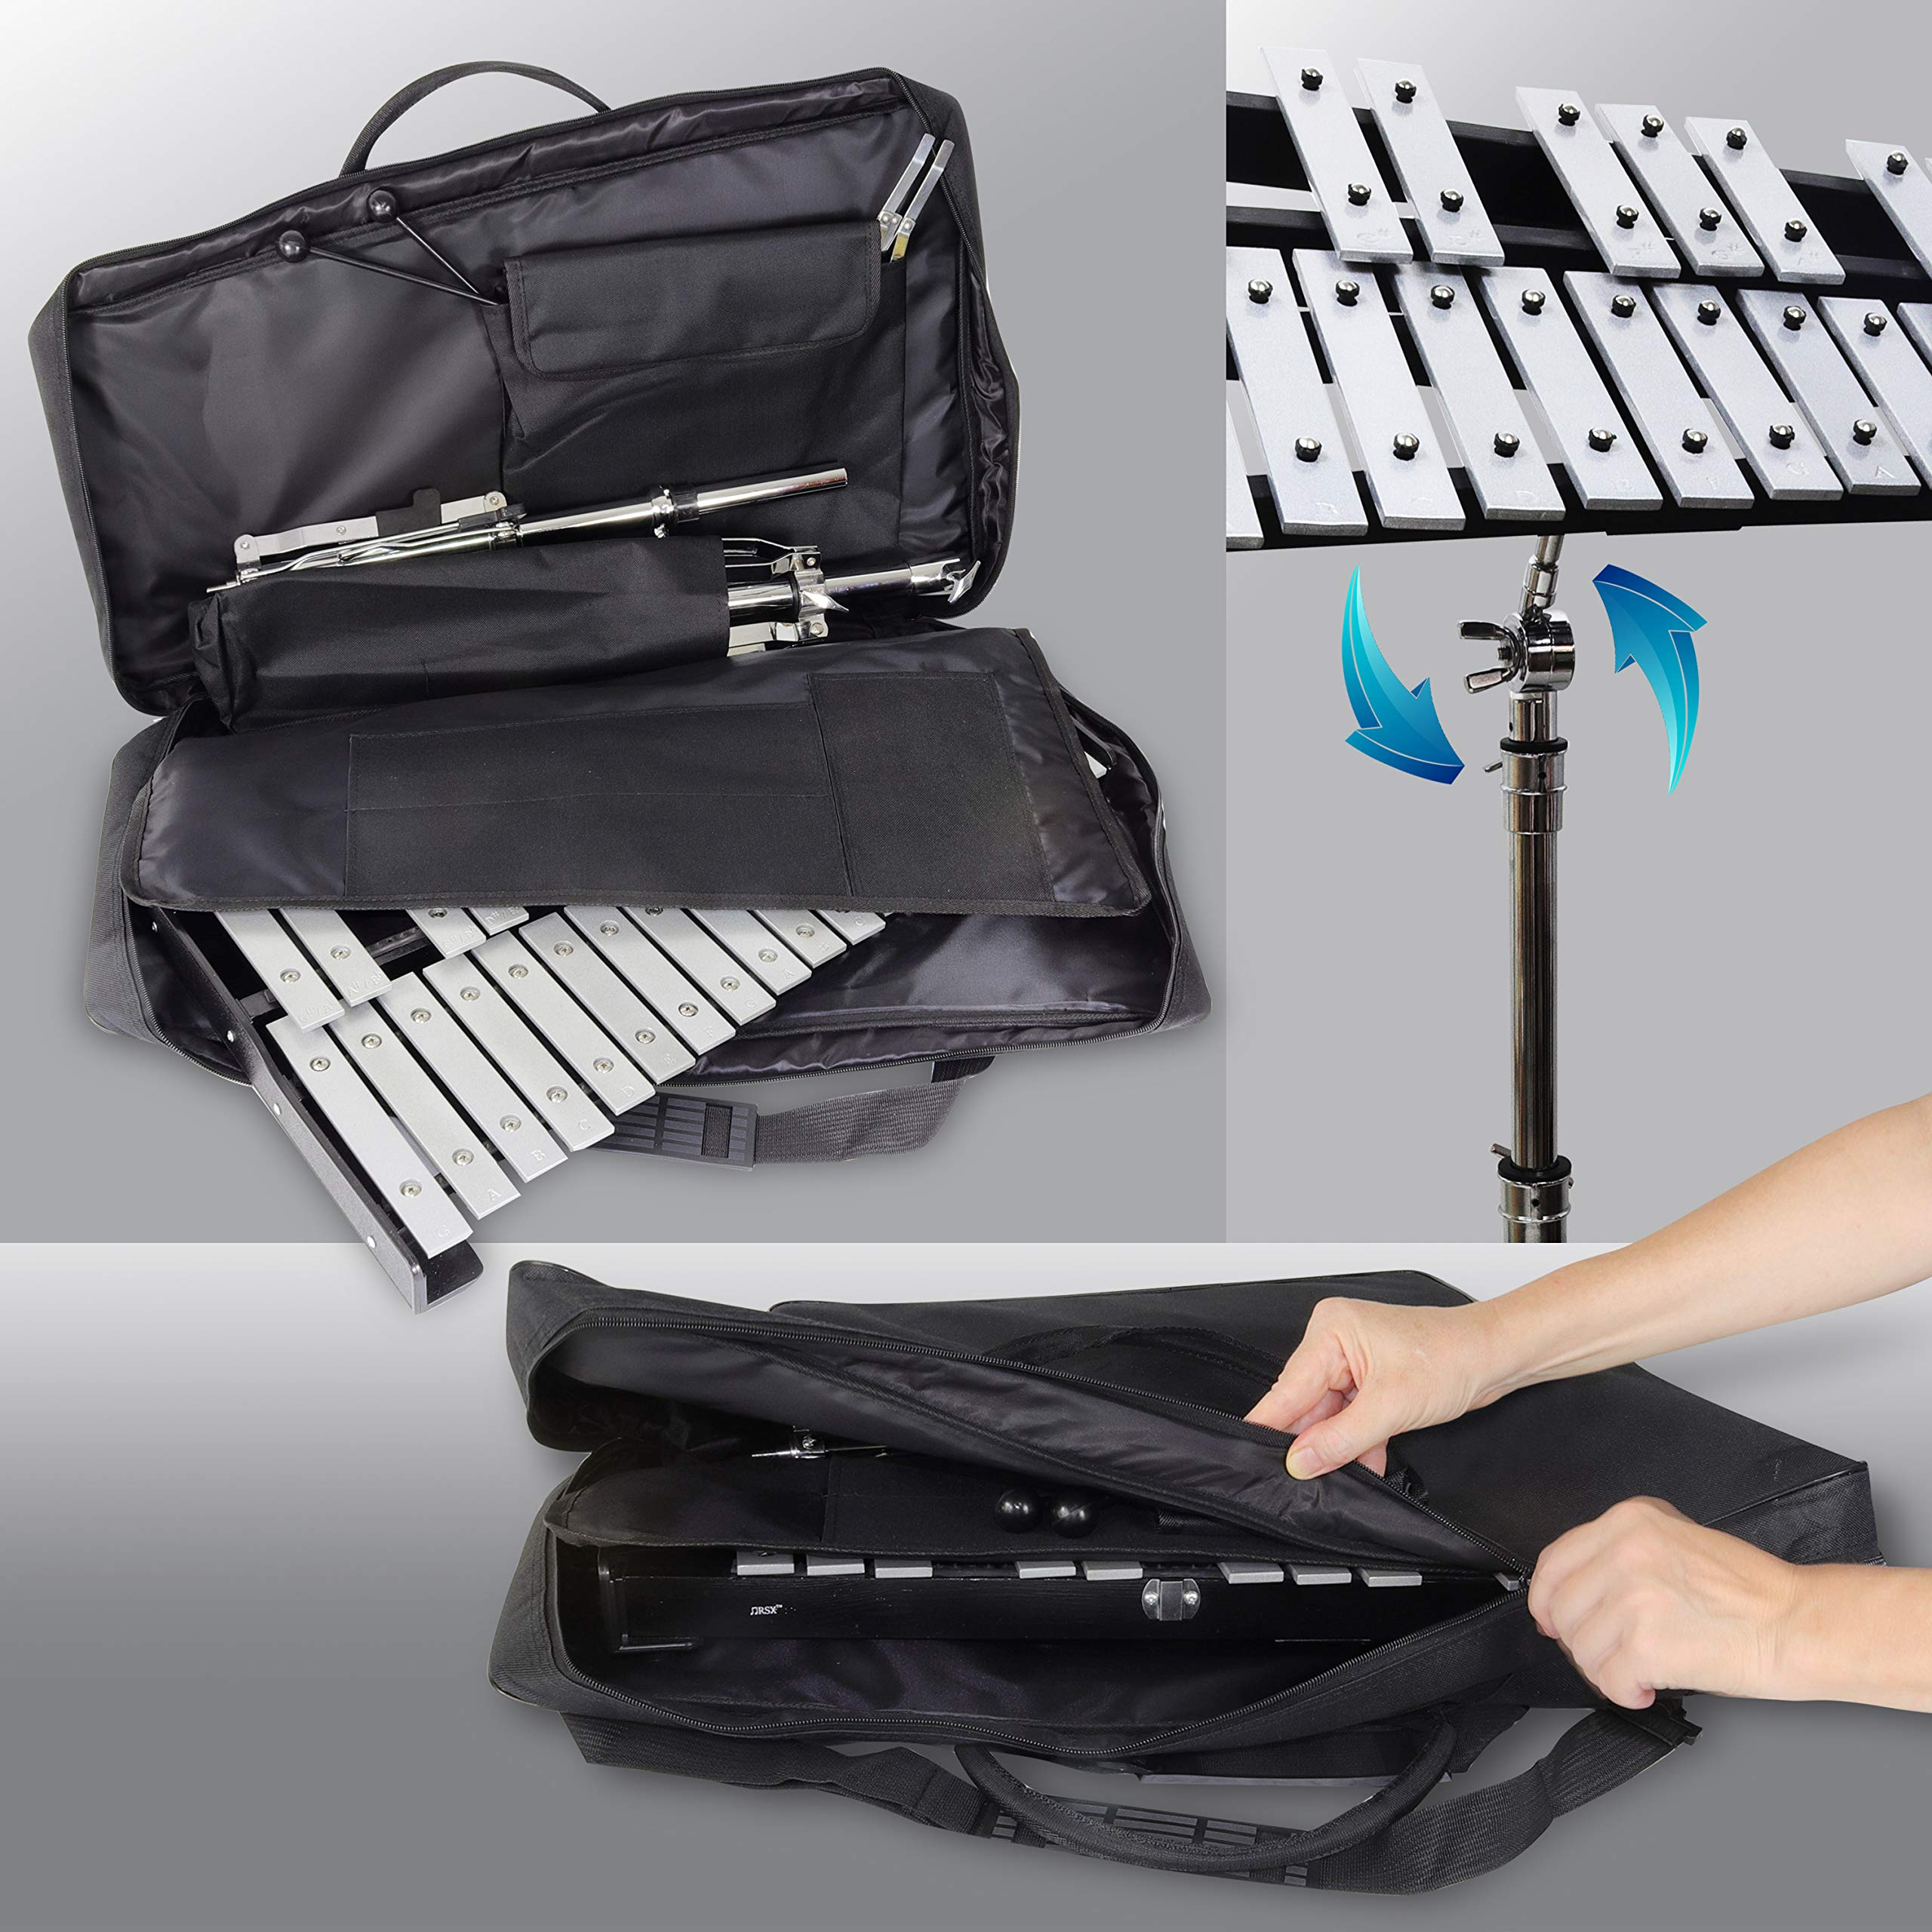 30 note Professional Glockenspiel - Metal Bell Kit Xylophone with Stand, Note Holder and Carrying Bag by inTemenos (Image #5)